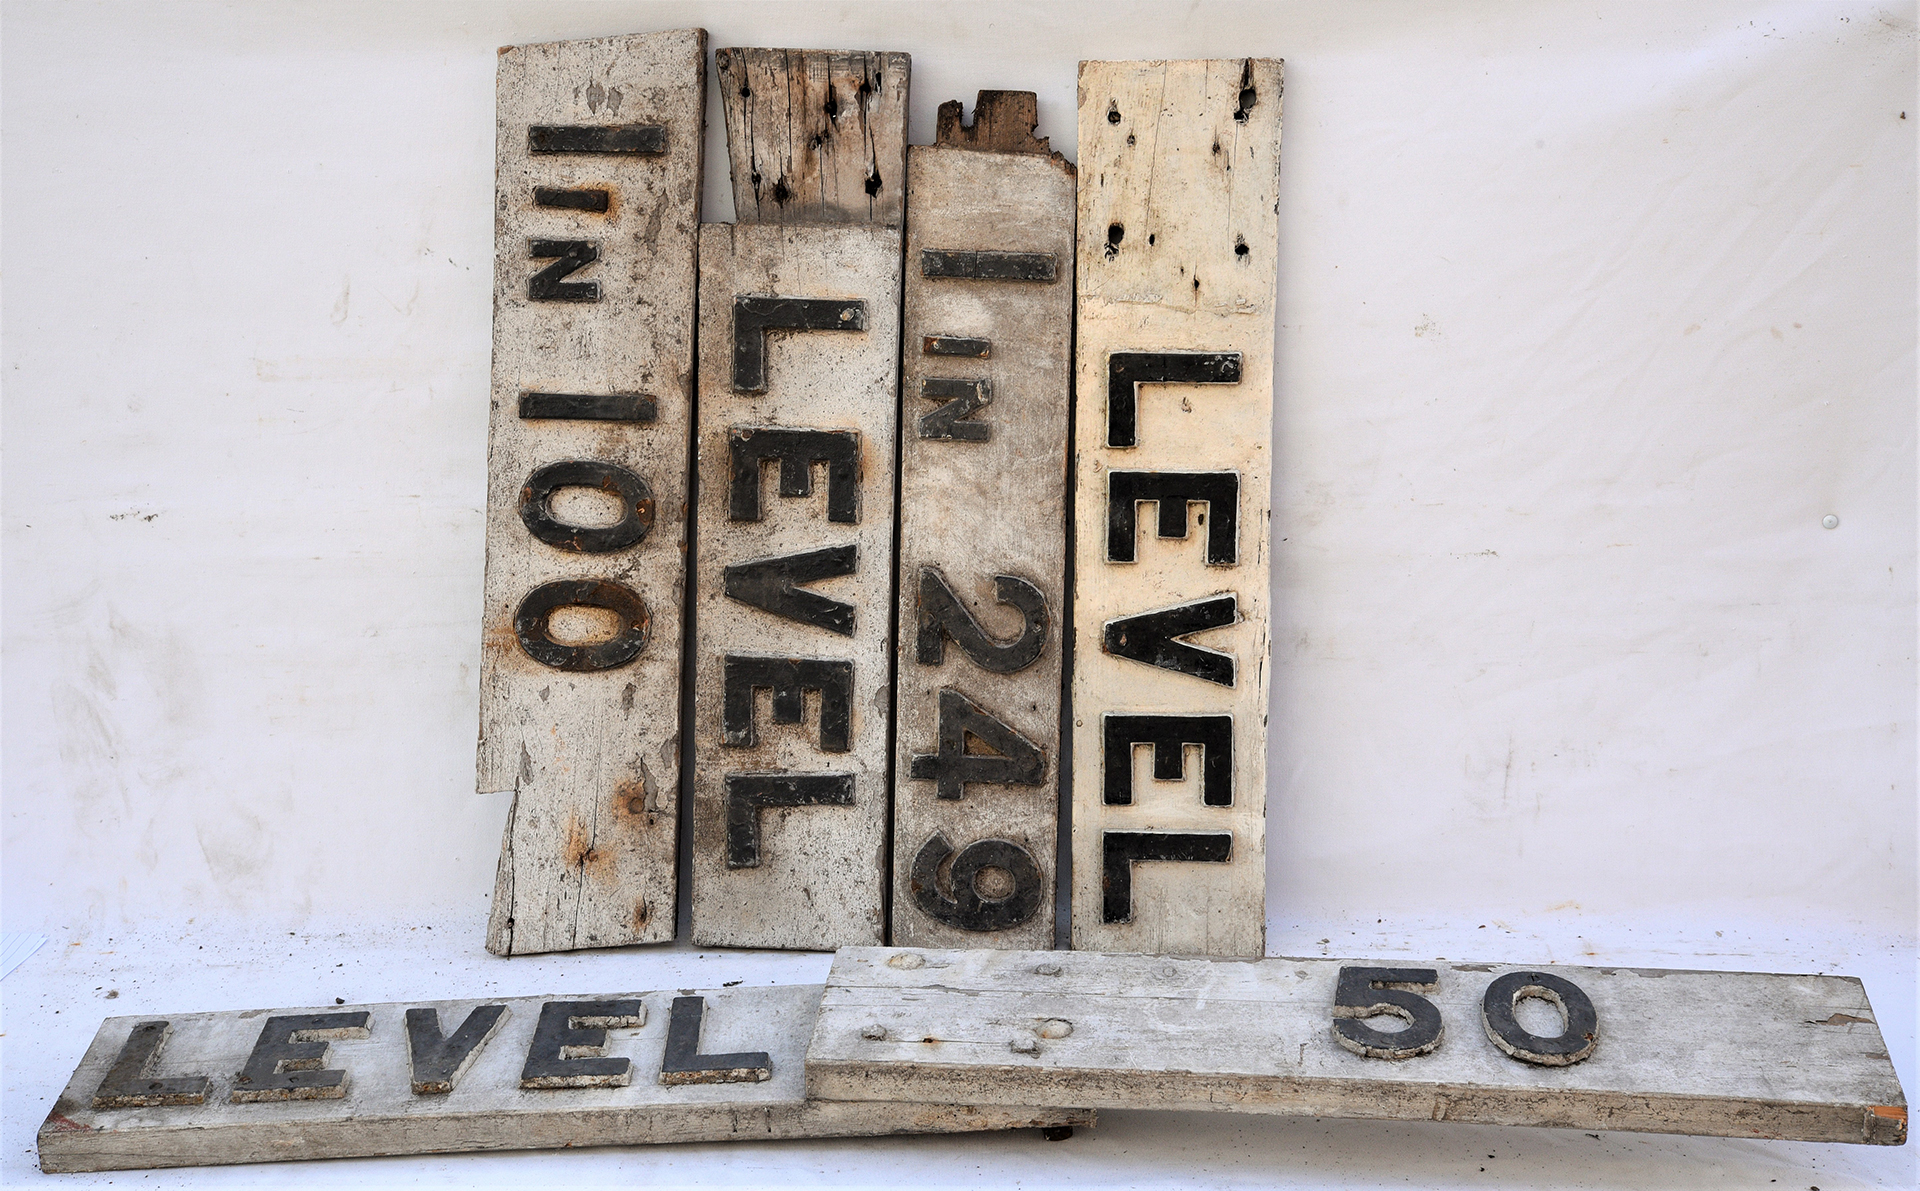 3 x wooden gradient sign tops. LEVEL - 50. LEVEL 1 in 100 and LEVEL 1 in 249. Mostly compete but